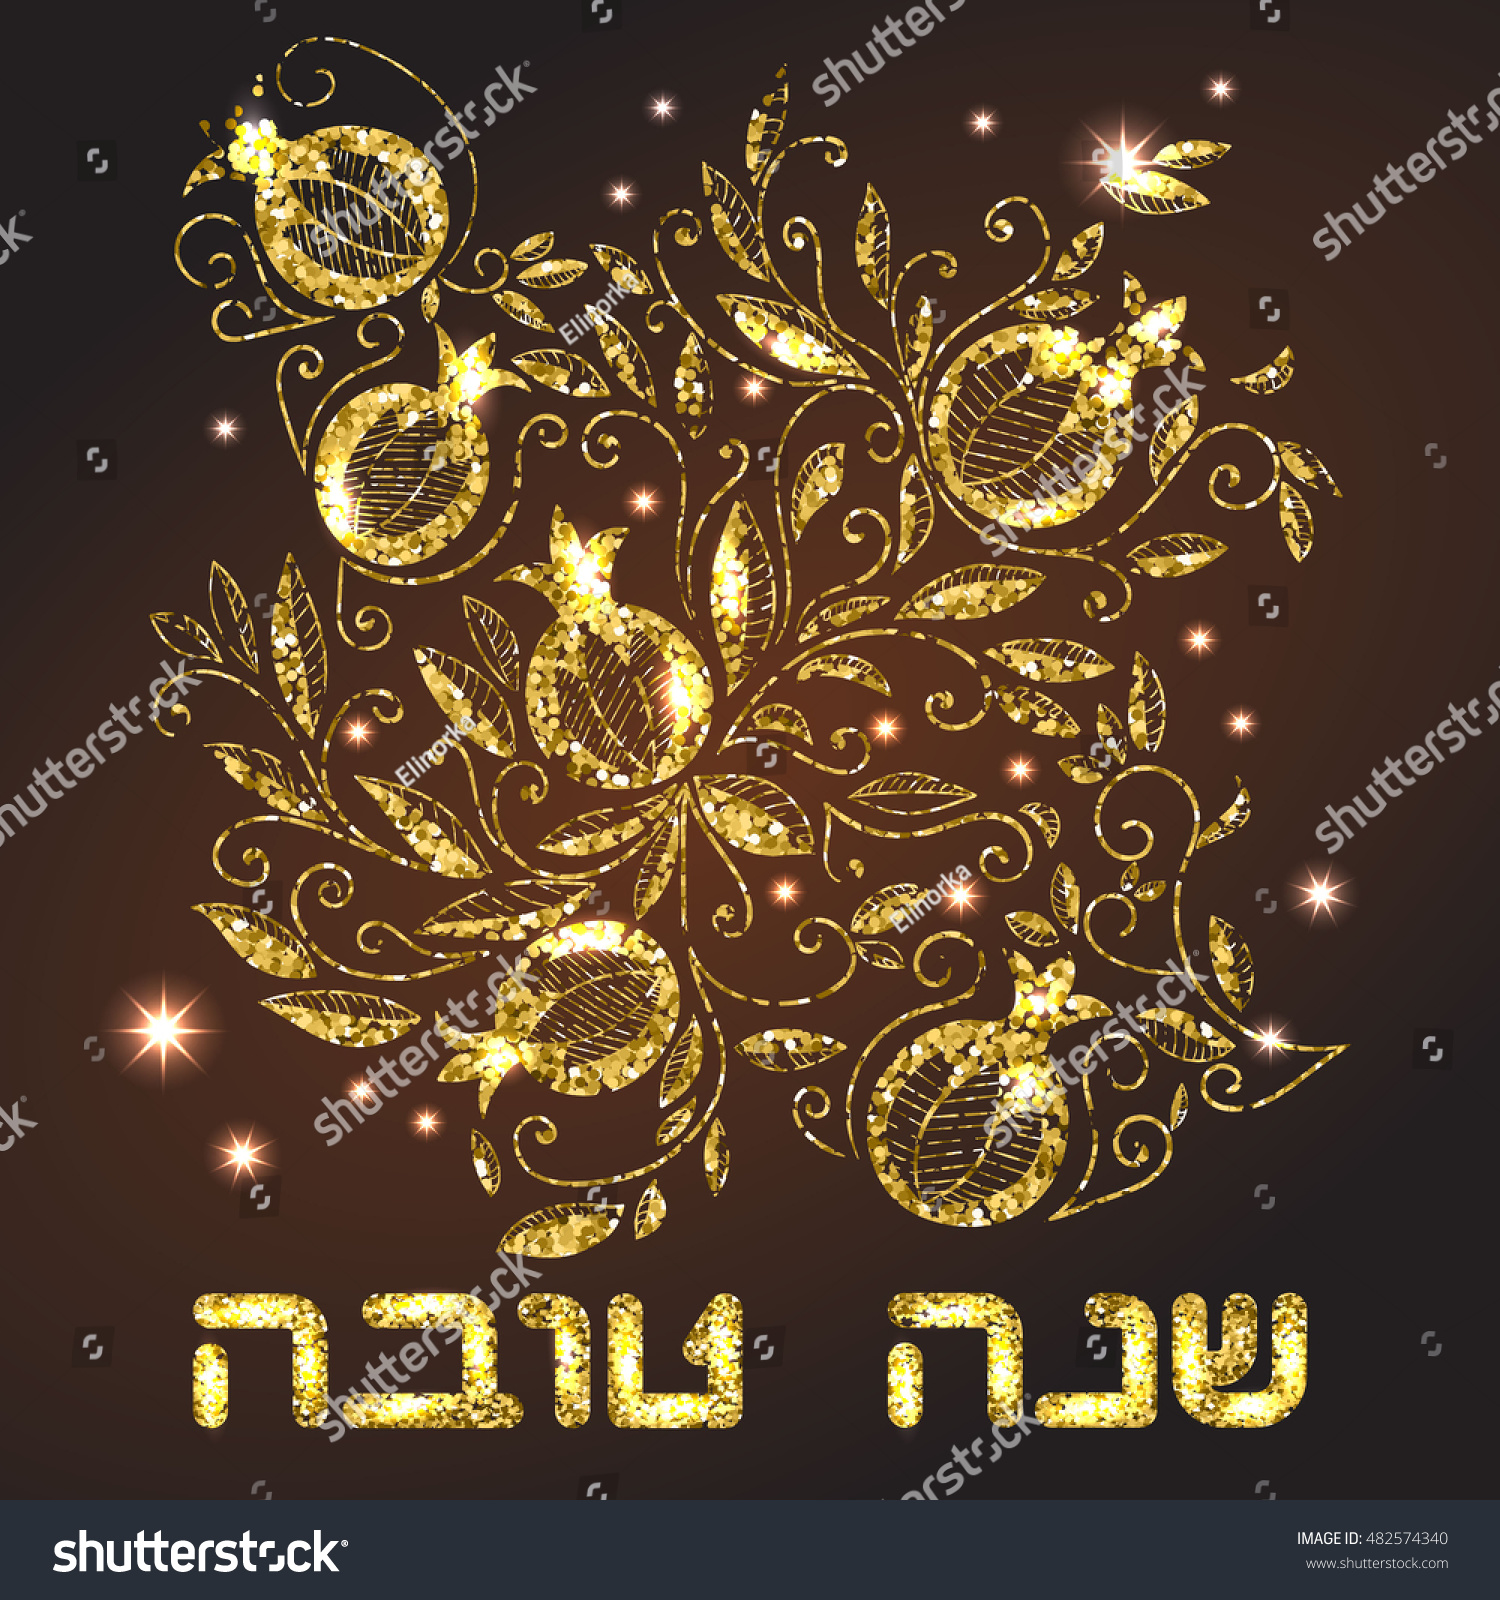 Rosh hashanah jewish new year greeting stock vector 482574340 rosh hashanah jewish new year greeting card with pomegranate rosh hashanah symbols hebrew kristyandbryce Choice Image